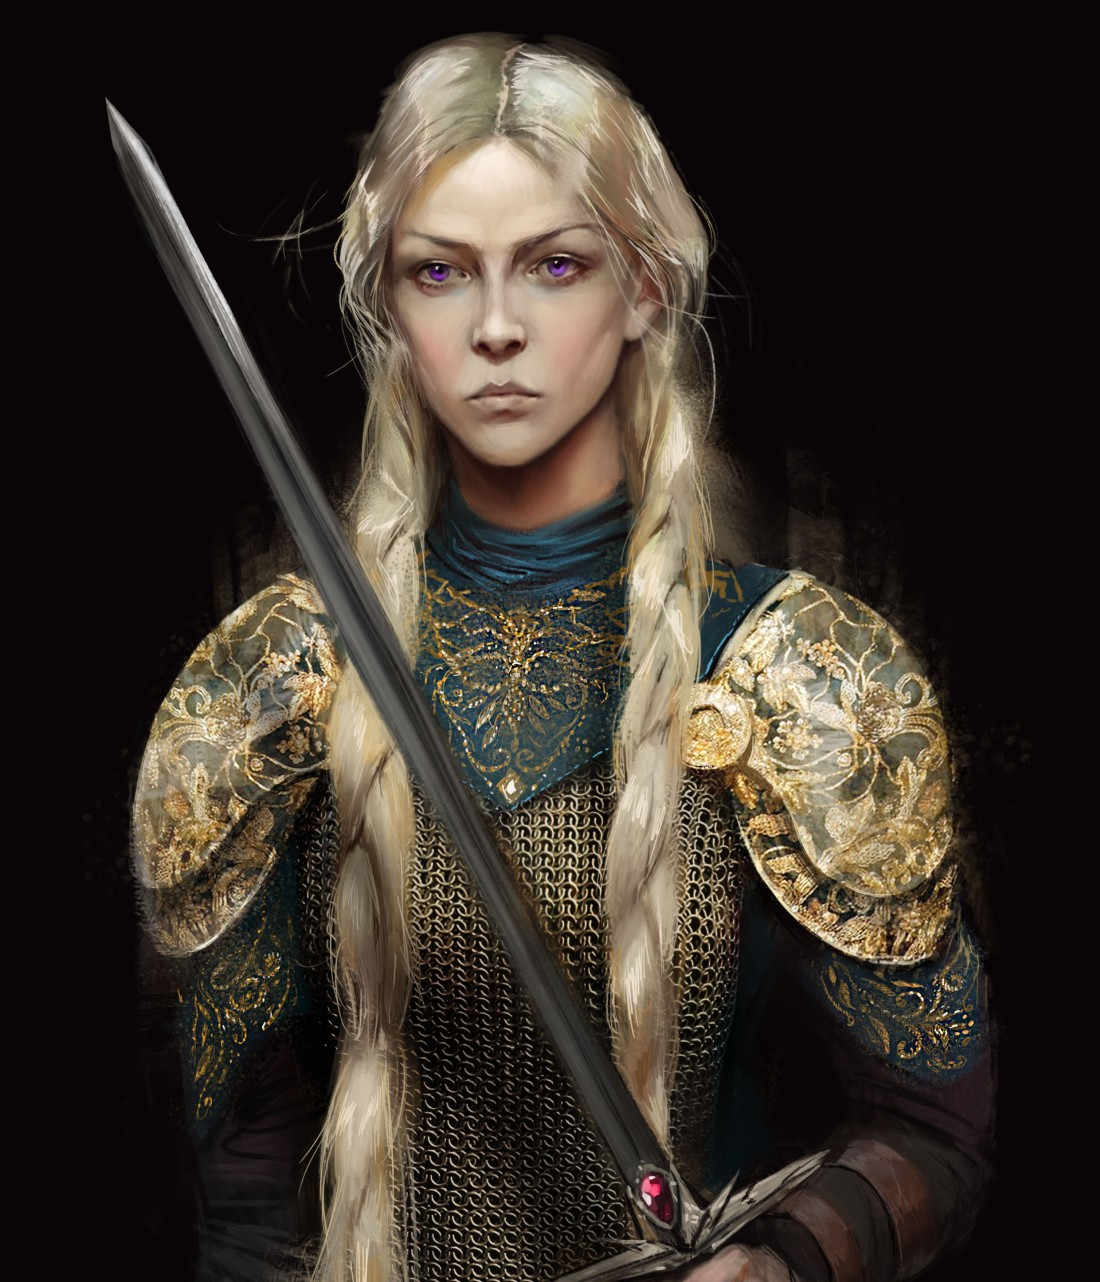 visenya_targaryen_by_bellabergolts_dbm59u8